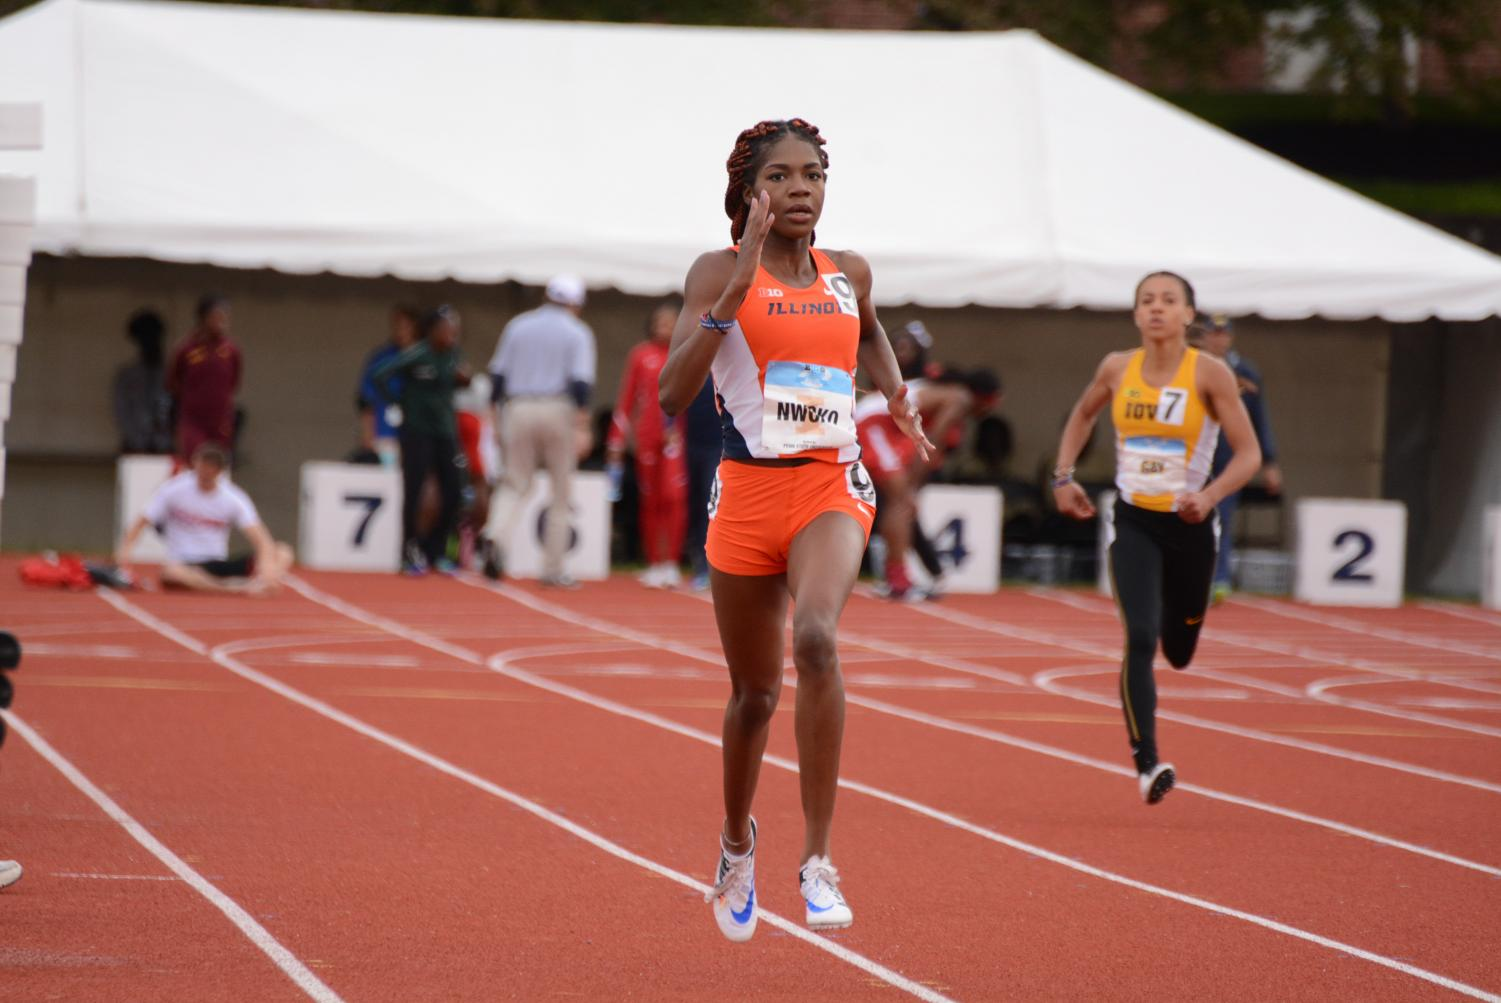 Illinois  sophomore Chisom Nwoko competes in the outdoor Big Ten Championships at the end of the 2017 season. Nwoko set a personal best of 53.11 in the 400-meter, which is the fifth-fastest in Illinois history.